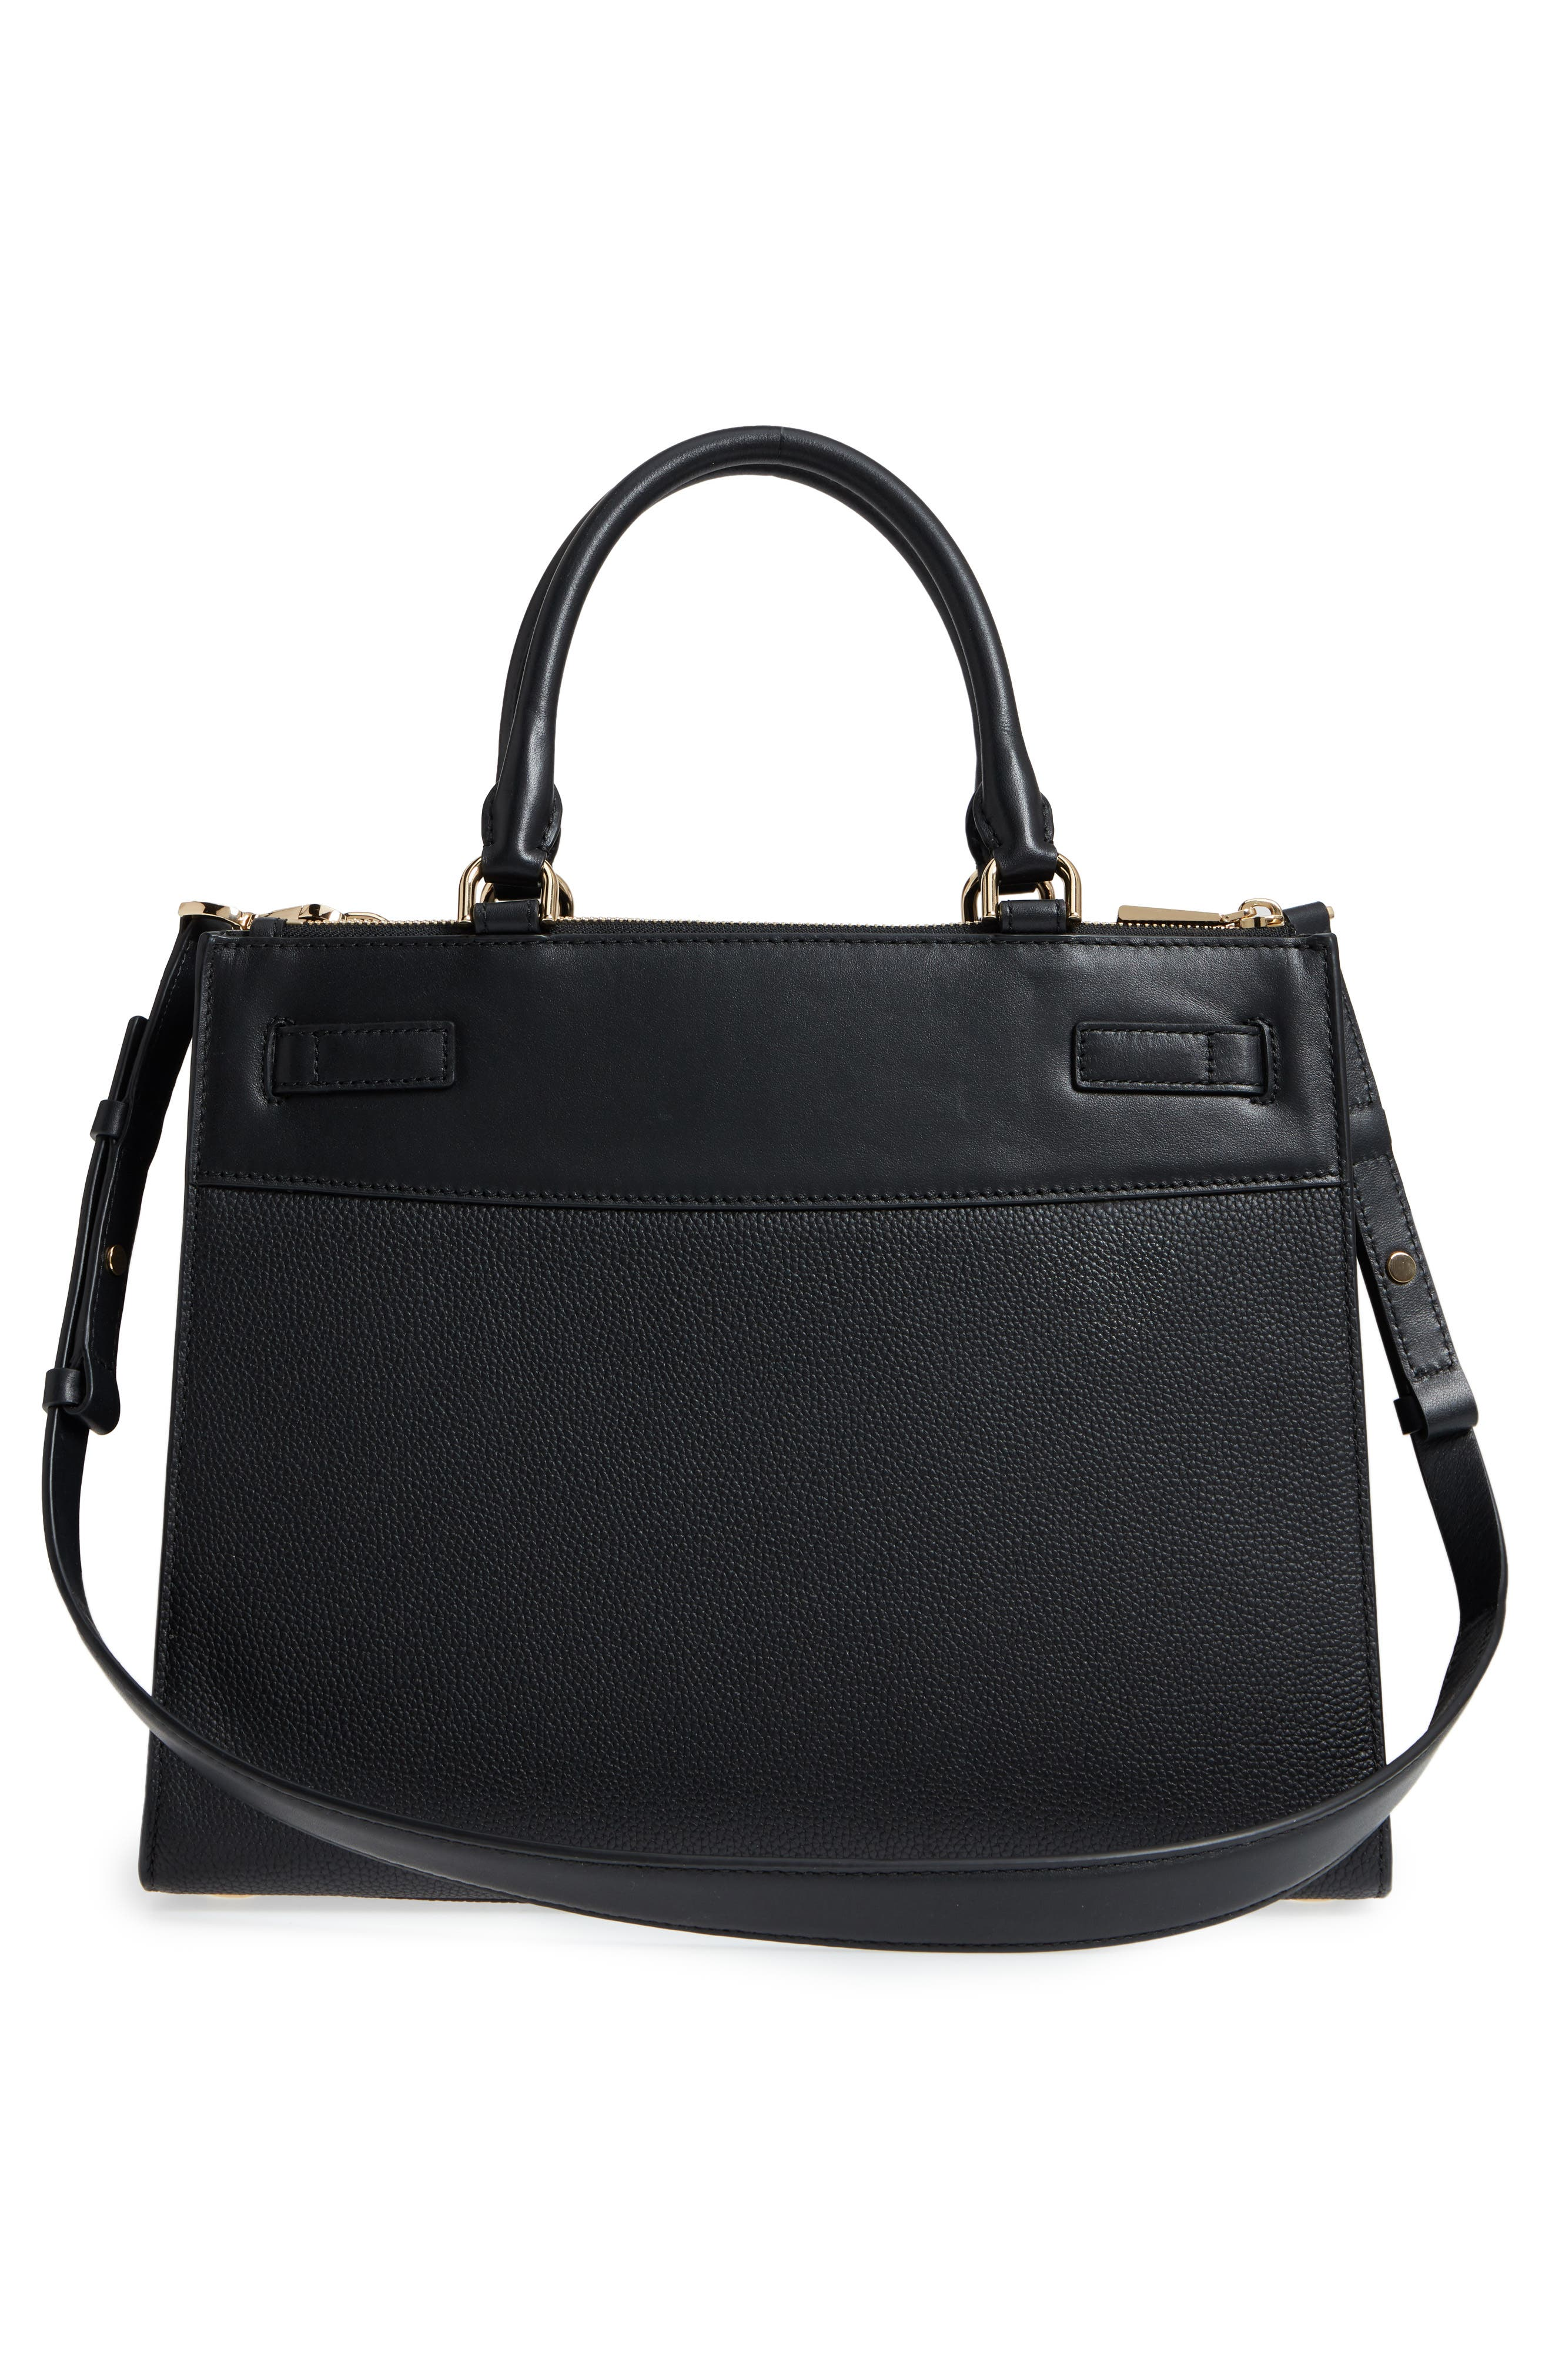 Reagan Large Leather Satchel,                             Alternate thumbnail 4, color,                             Black